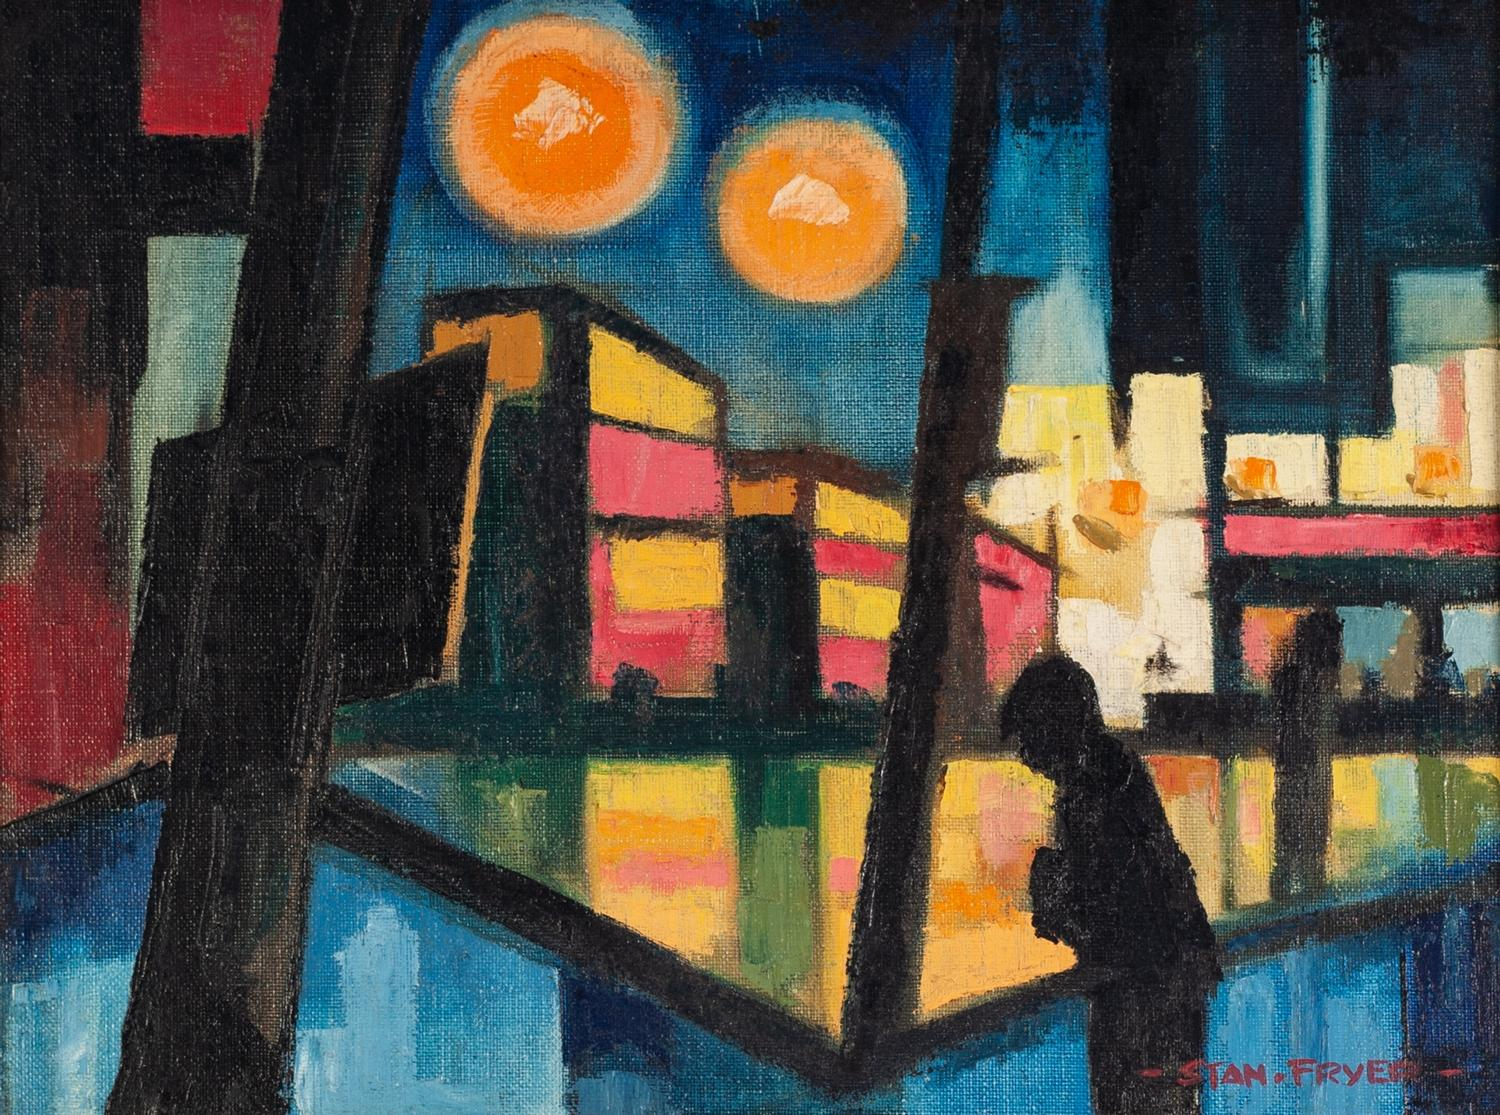 Lot 39 - STANLEY FRYER (1906 - 1983) OIL PAINTING ON BOARD 'Buses in Manchester Piccadilly Gardens' Signed